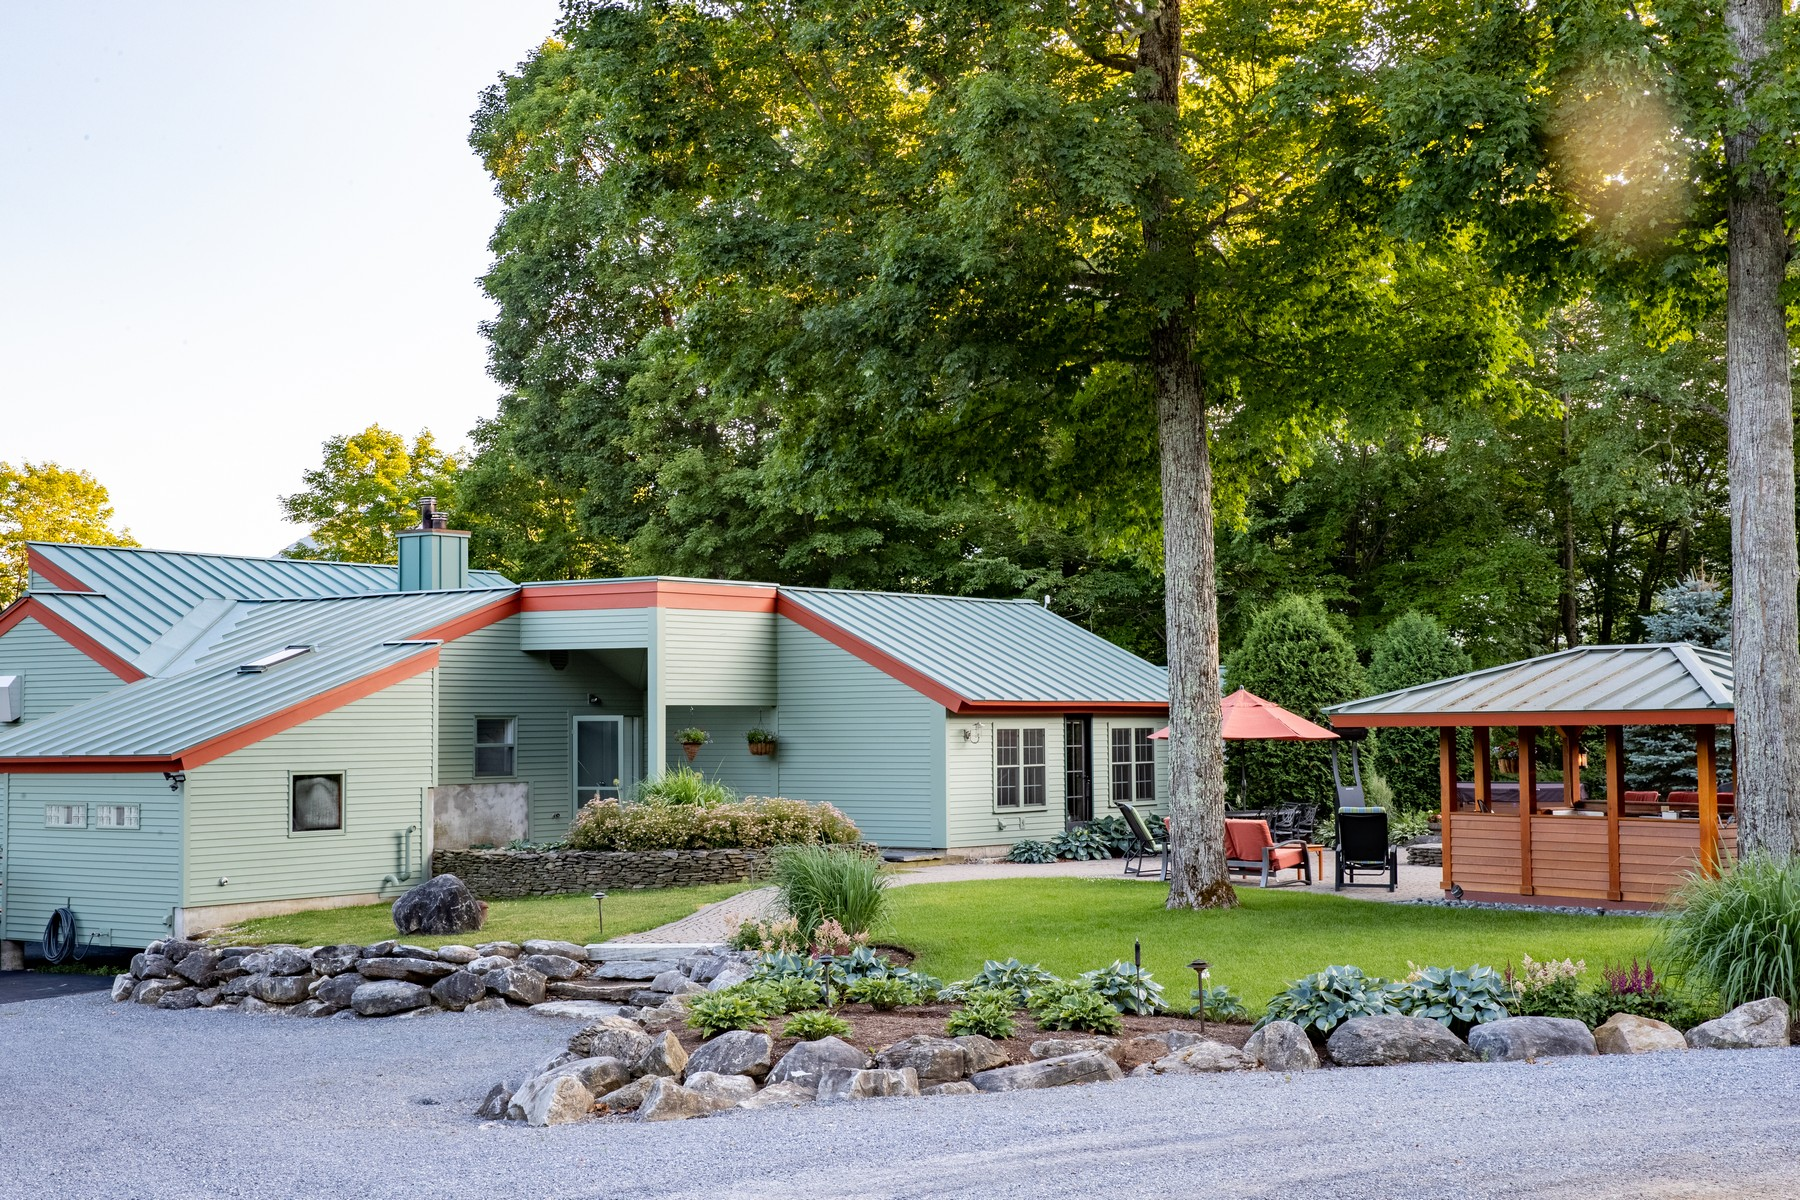 Single Family Homes for Sale at Dorset Vermont Retreat 2747 Morse Hill Rd Dorset, Vermont 05251 United States